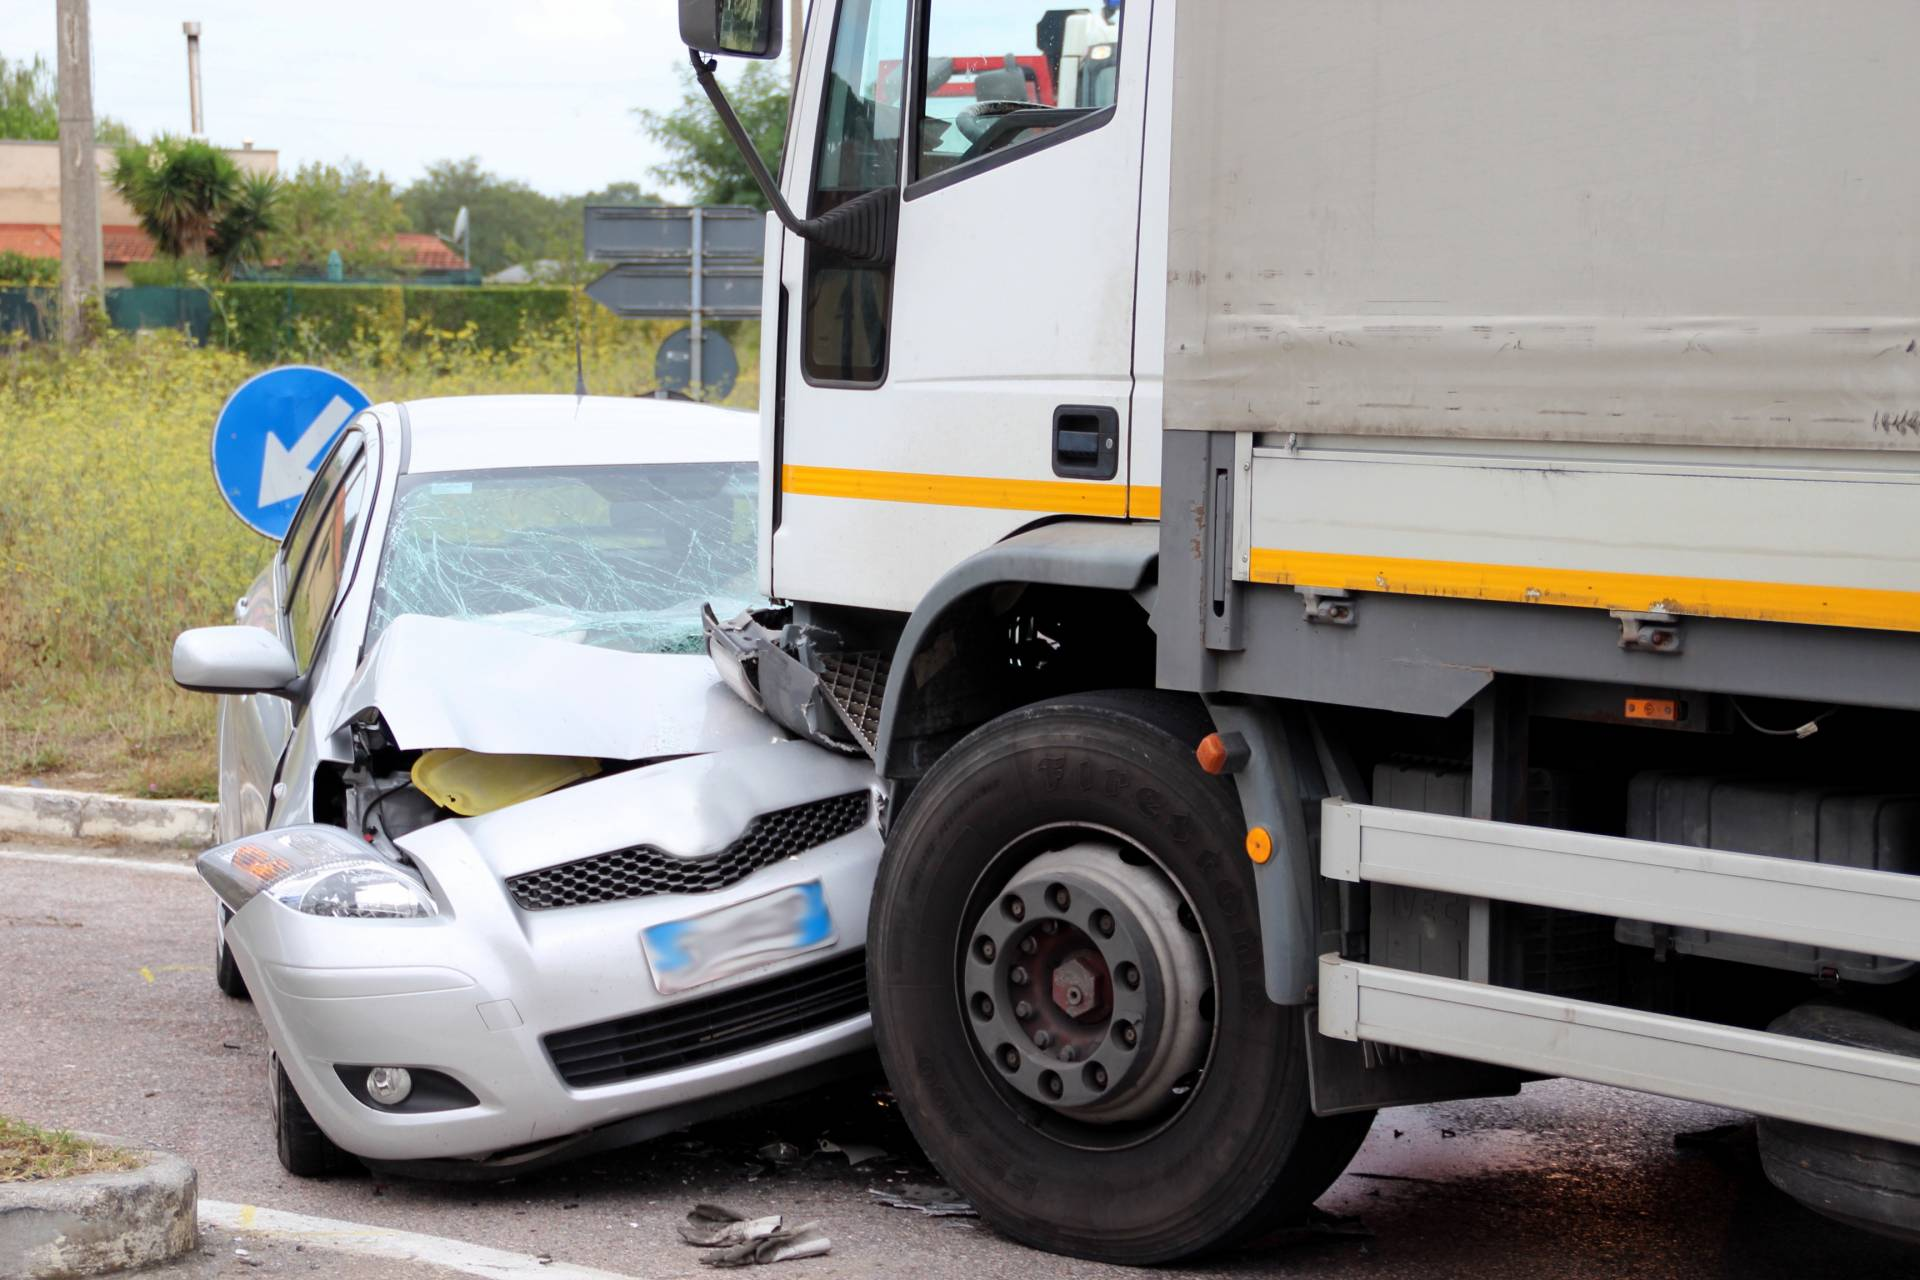 Injured in a truck accident? Contact us today!